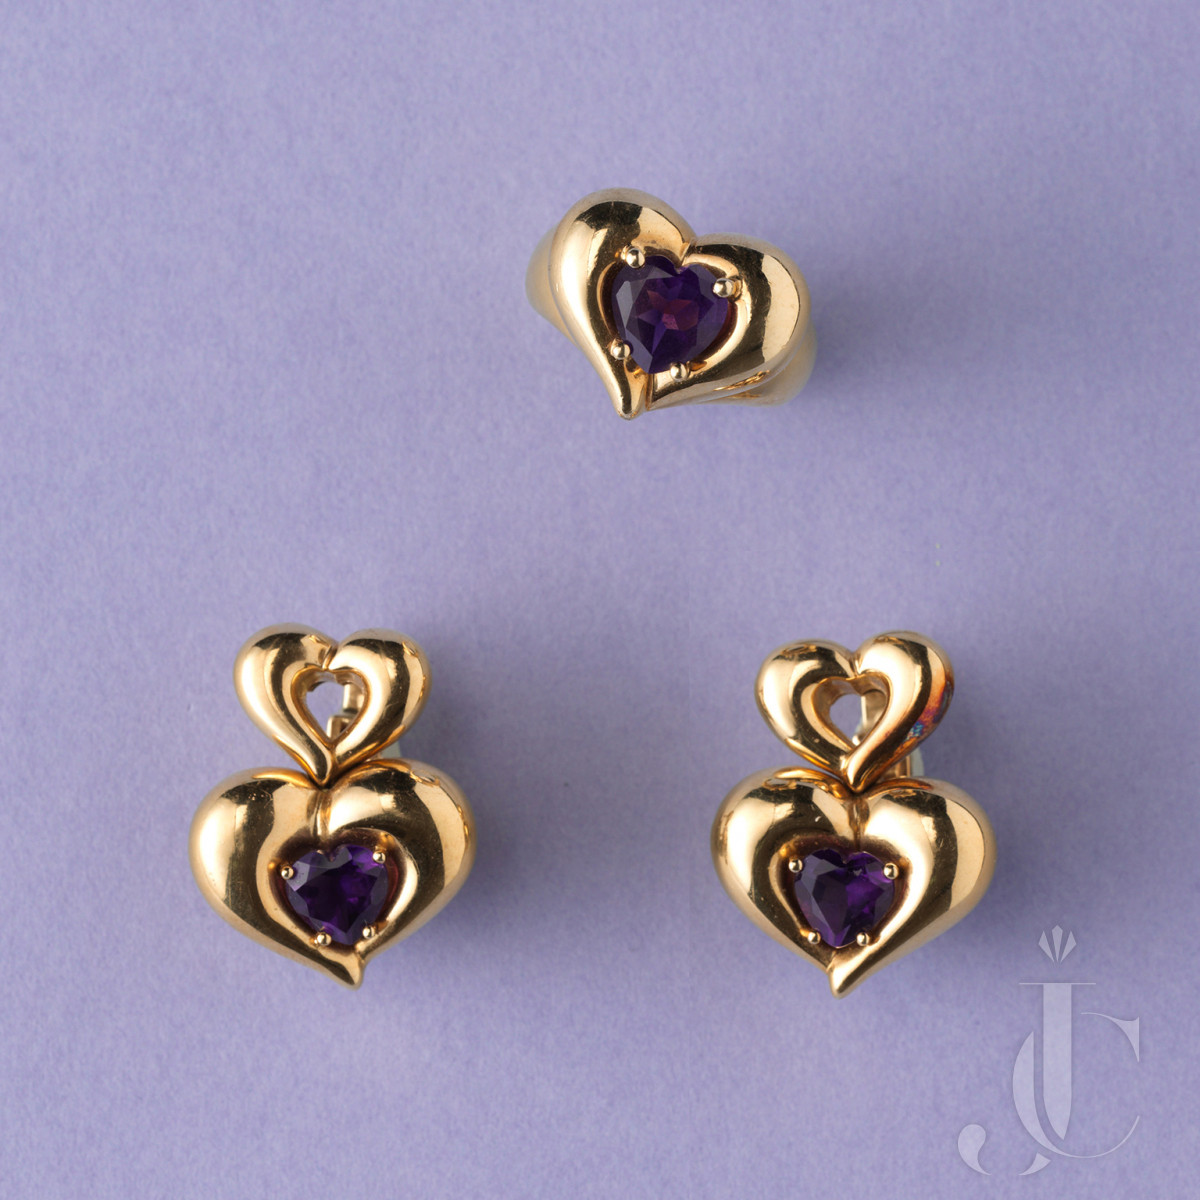 VAN CLEEF AND ARPELS GOLD AND AMETHYST HEART RING AND EARRINGS